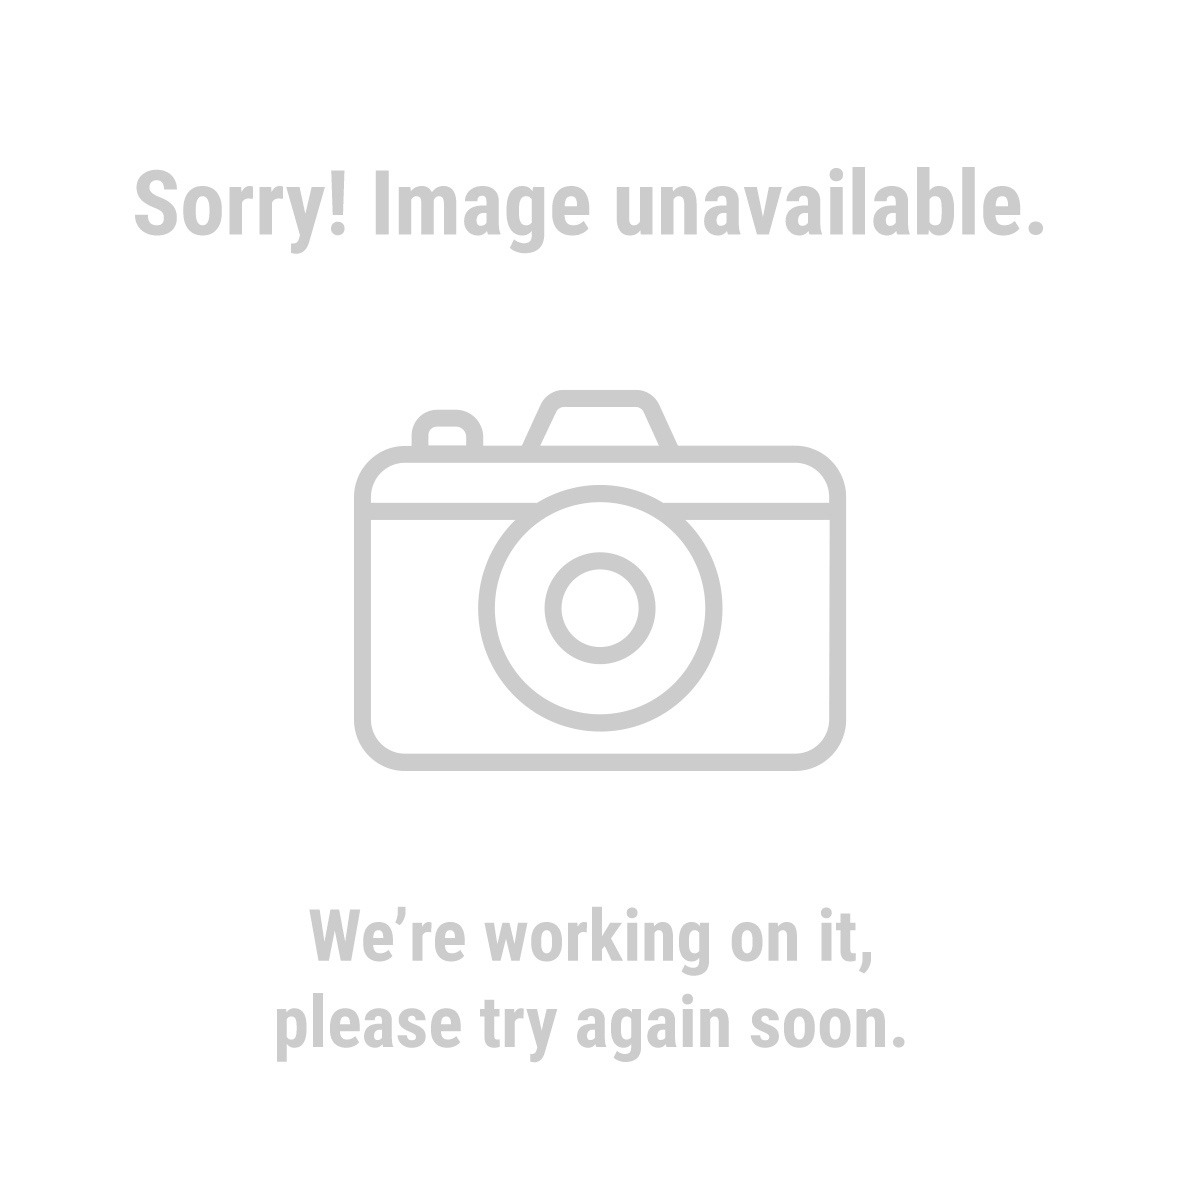 Haul-Master® 63094 400 lb. Capacity 1 in. x 15 ft. Ratcheting Tie Downs 4 Pc